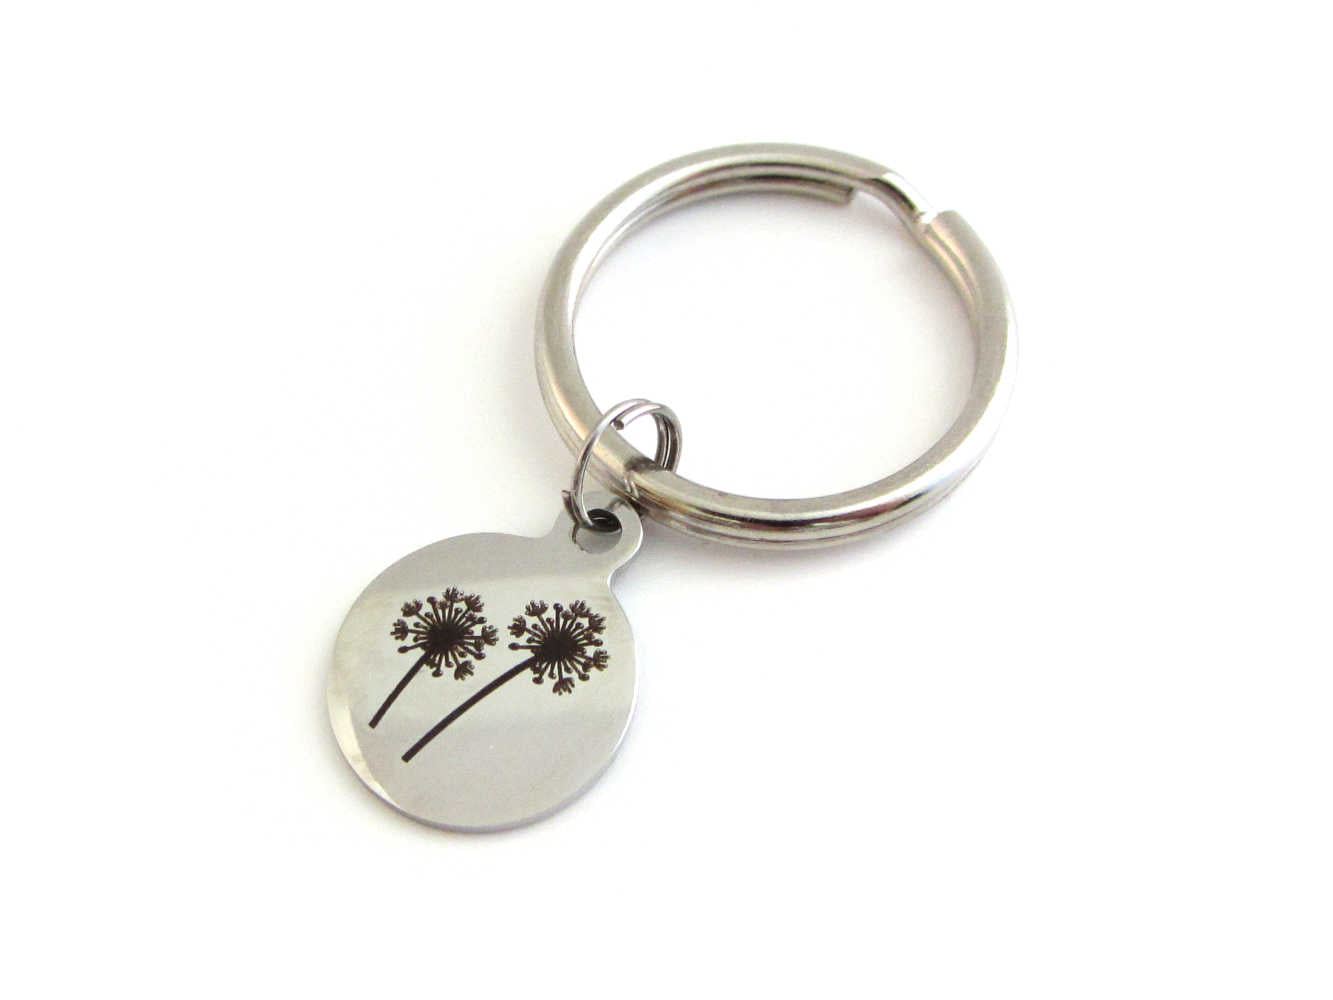 laser engraved dandelion flowers charm on a keyring